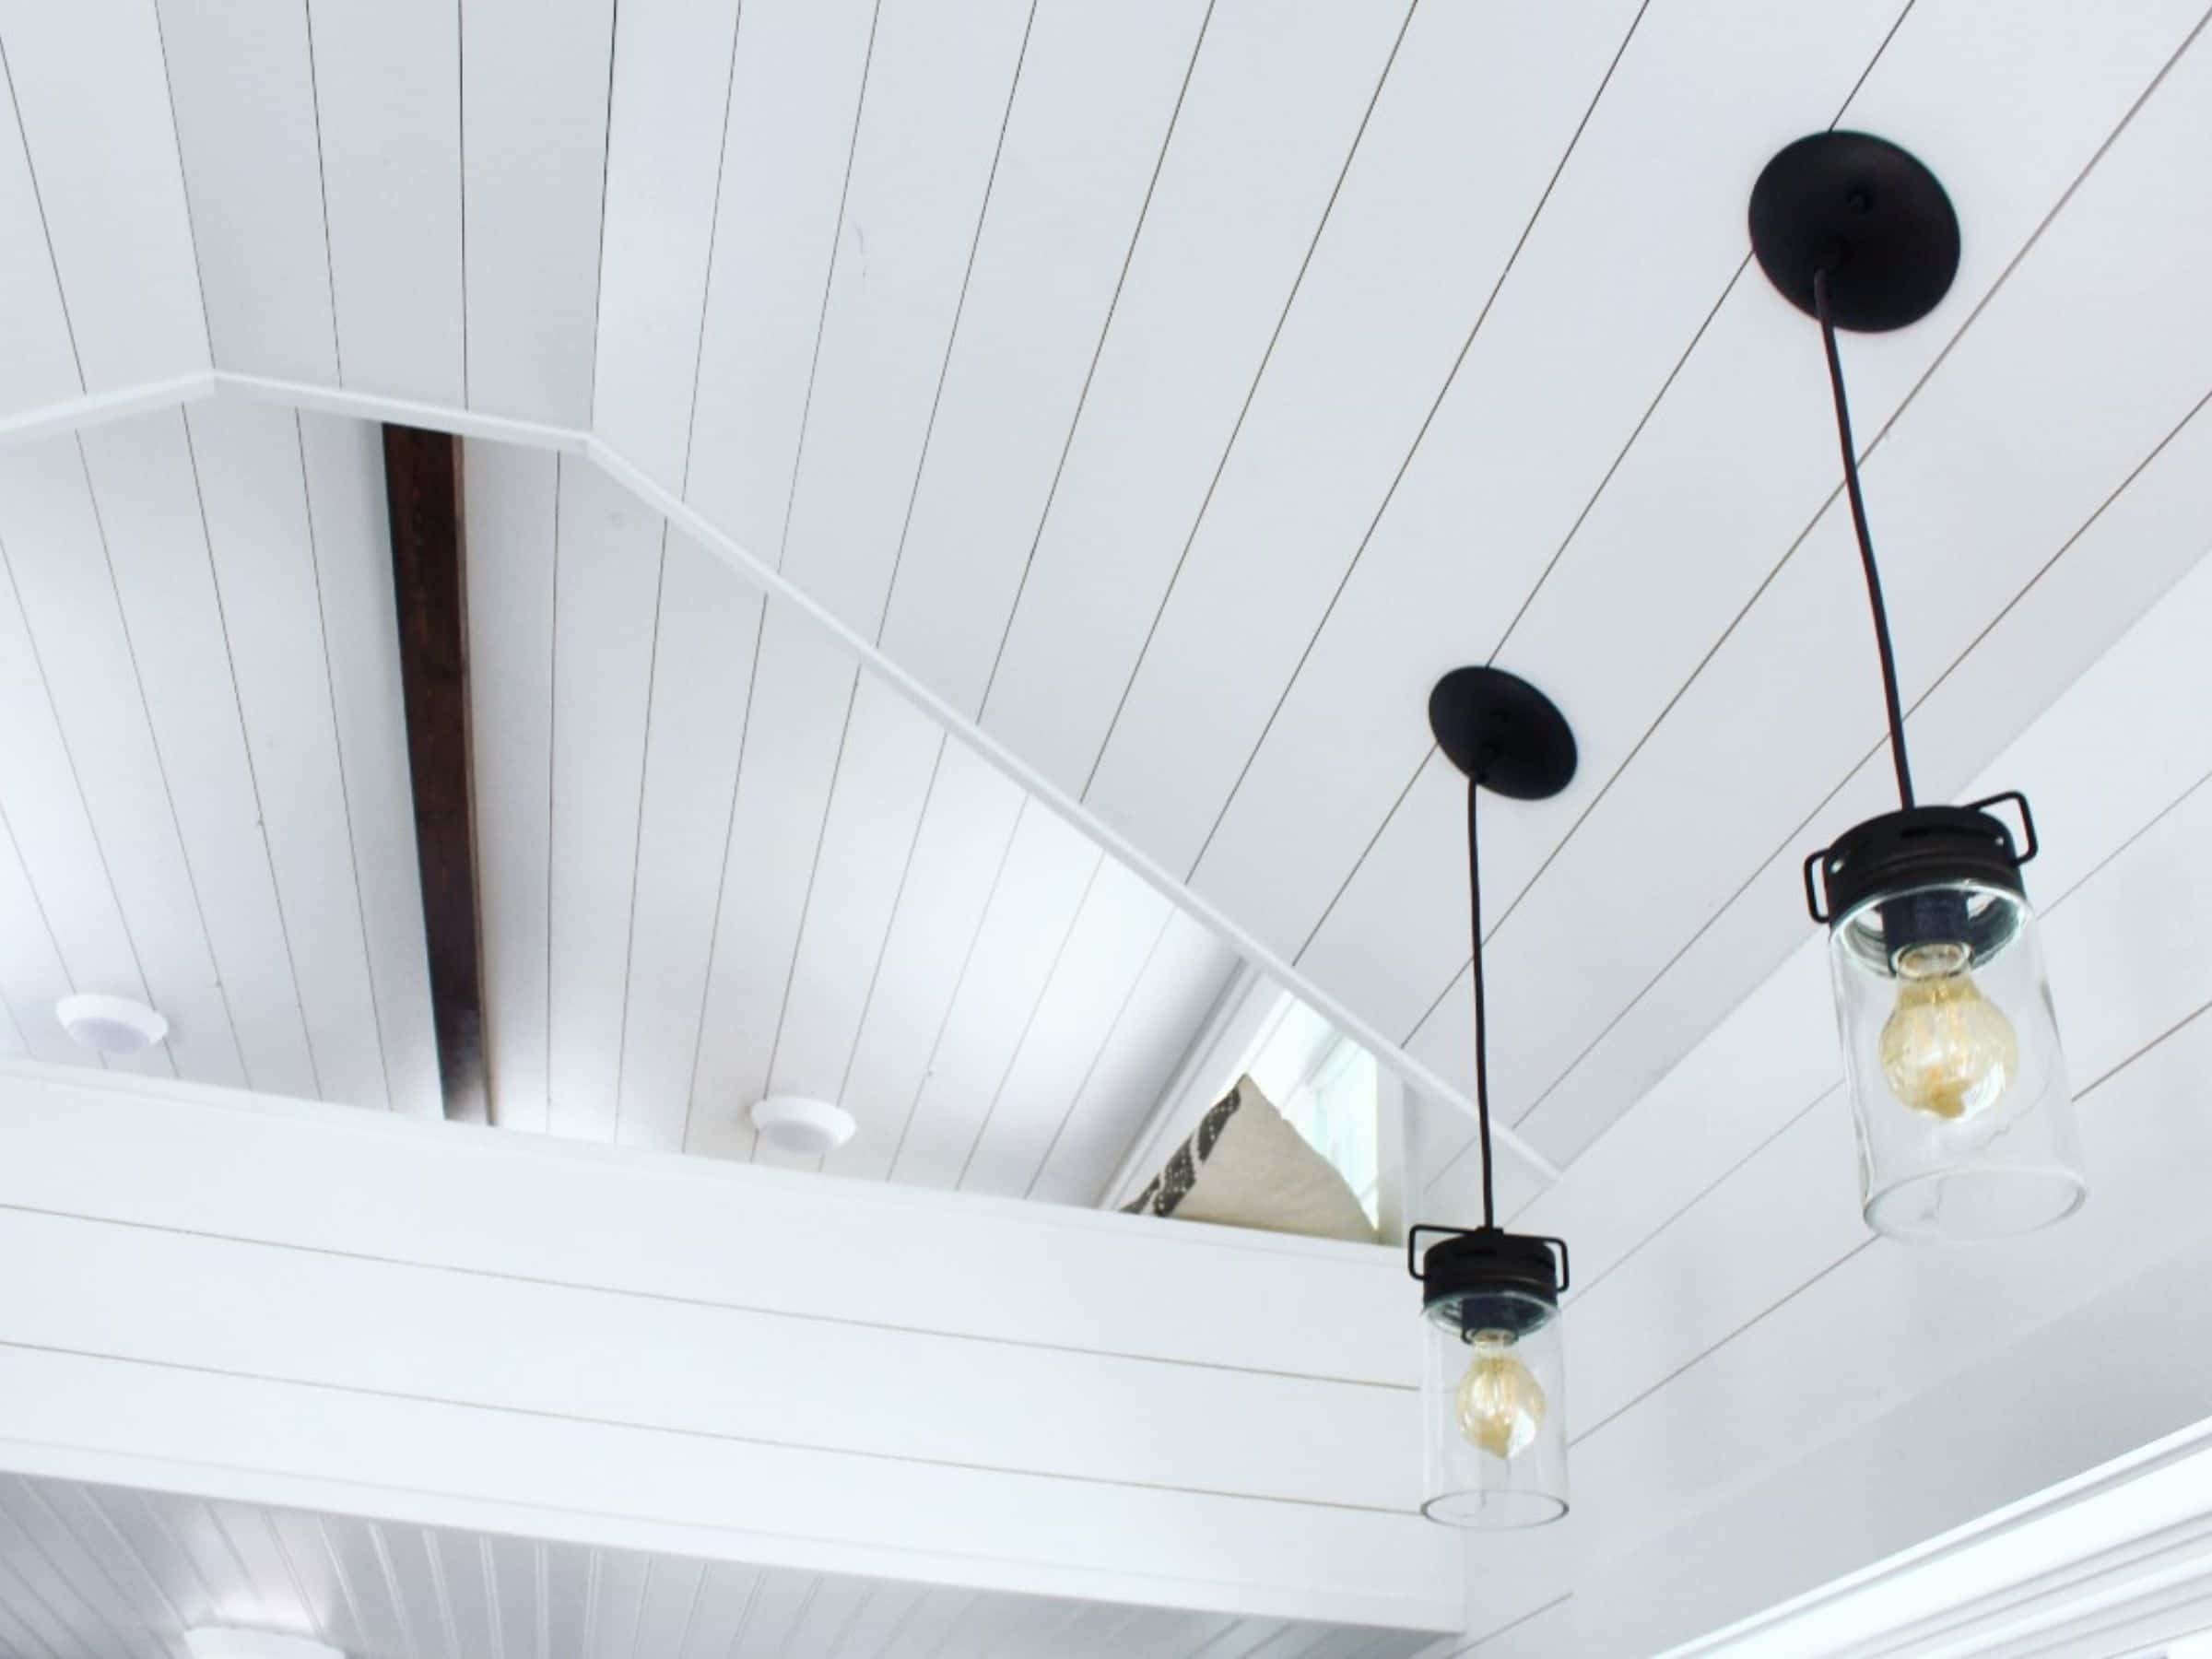 White shiplap ceiling with dangling Edison lights in black fixtures